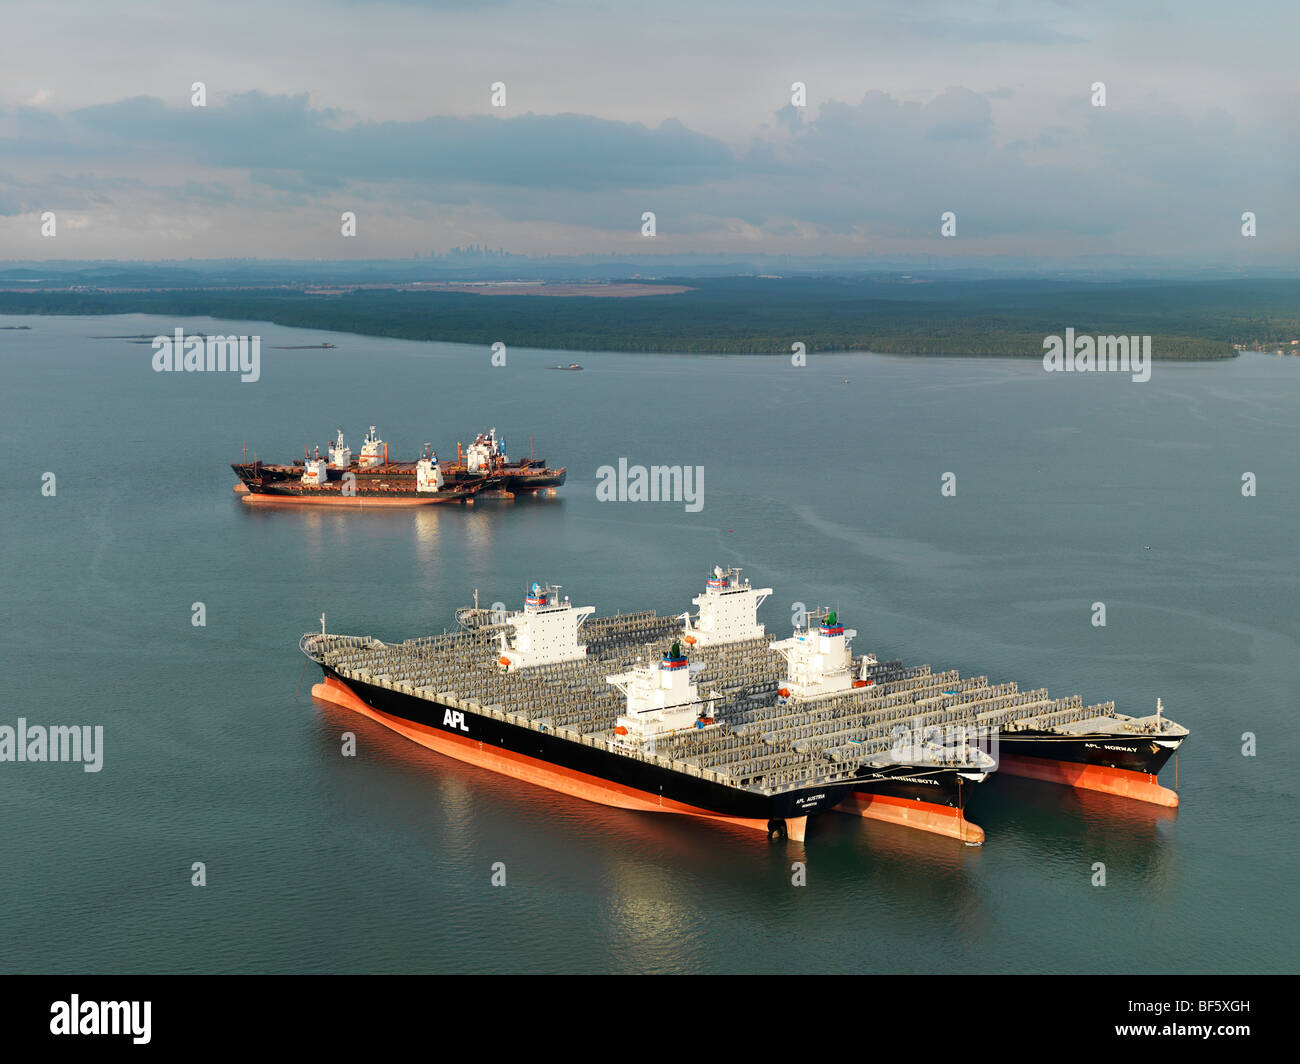 Freight ships anchored next to each in order to hold the large sections of a suspension bridge under construction. - Stock Image